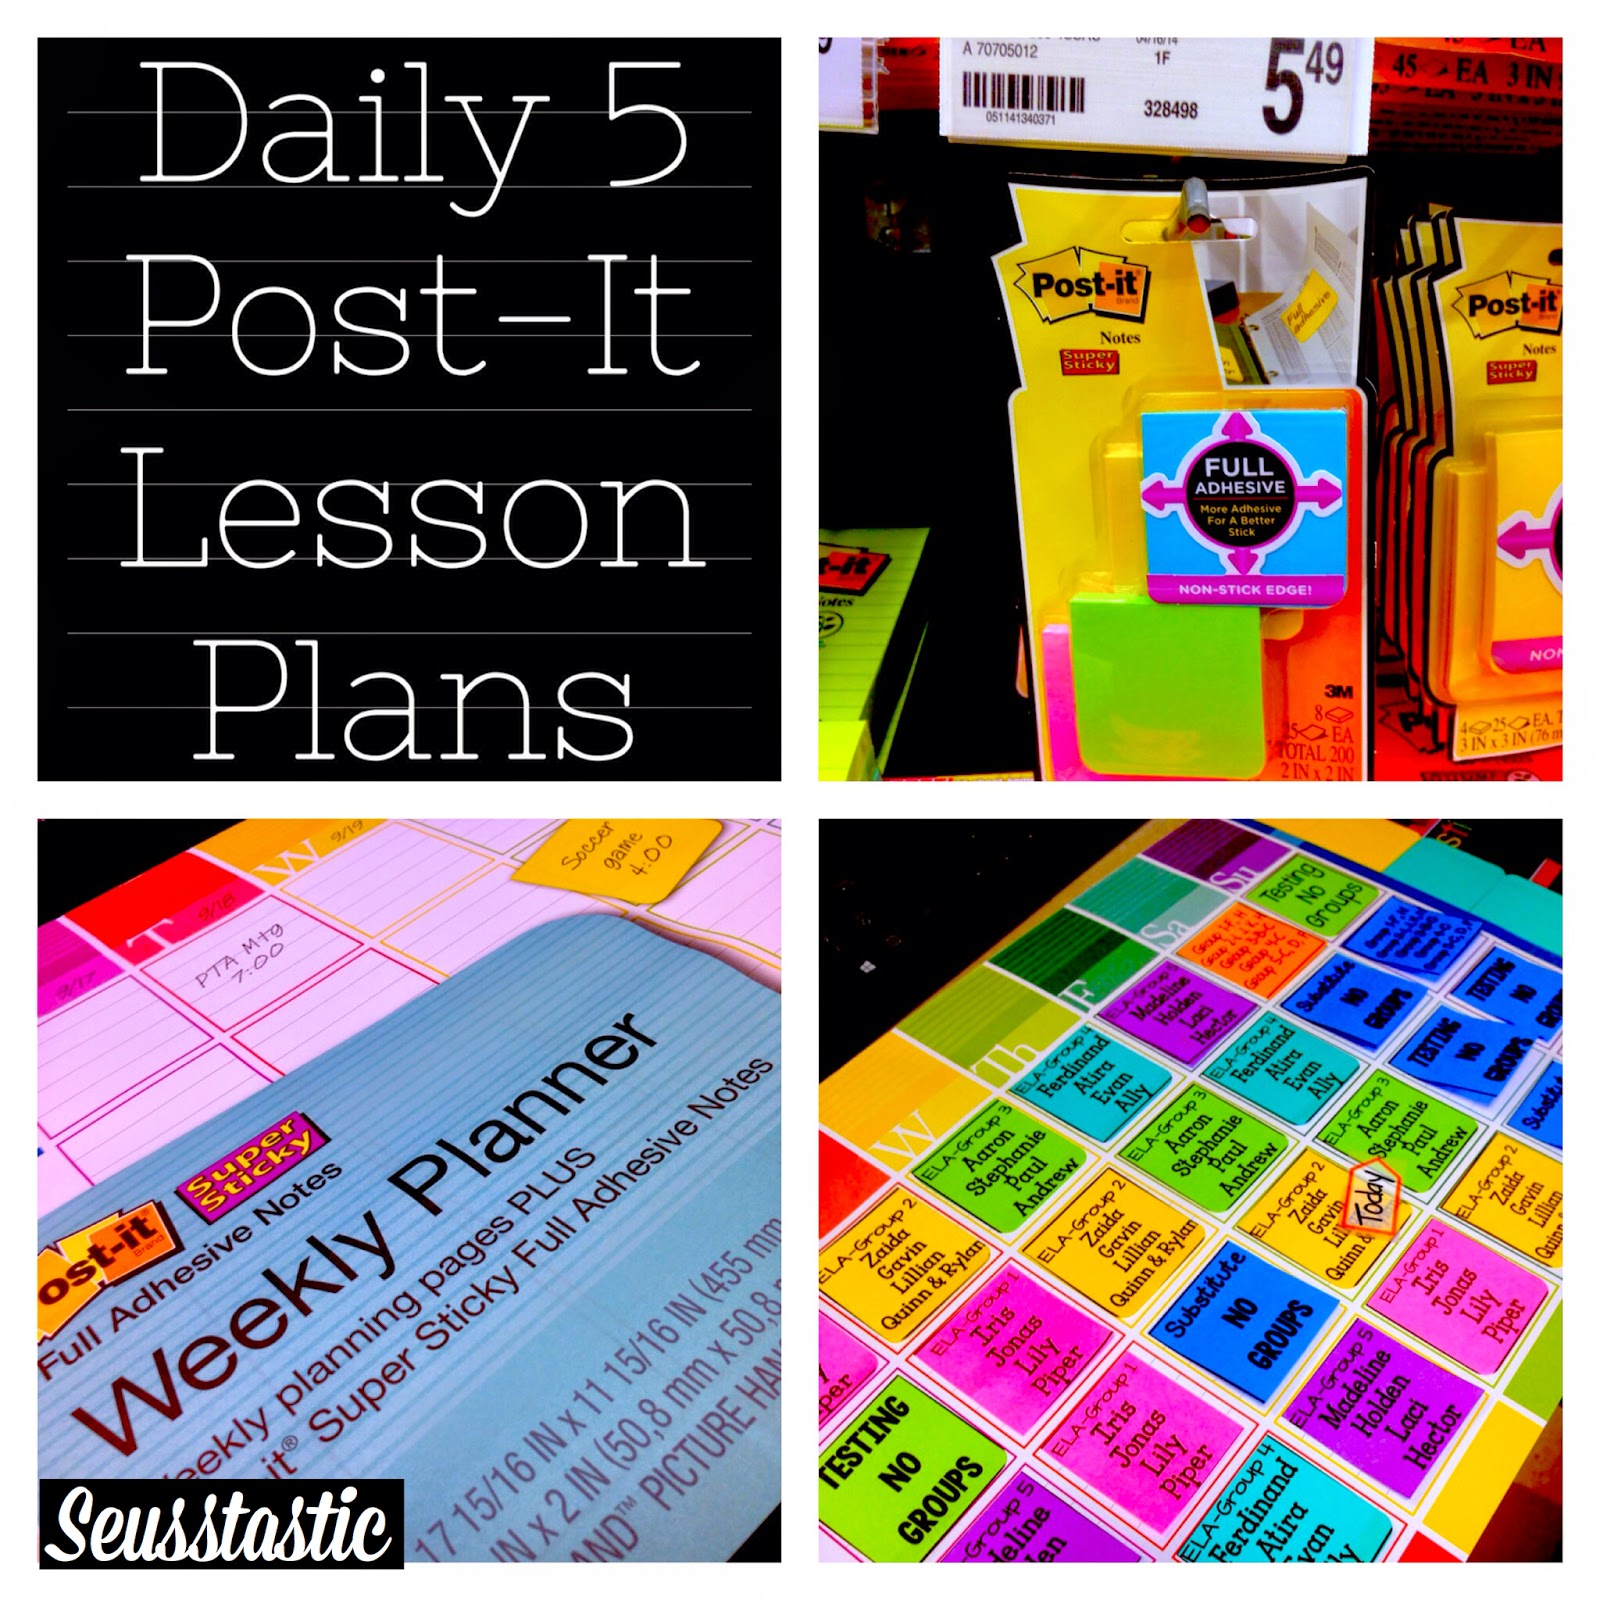 Daily 5 Post It Lesson Plans